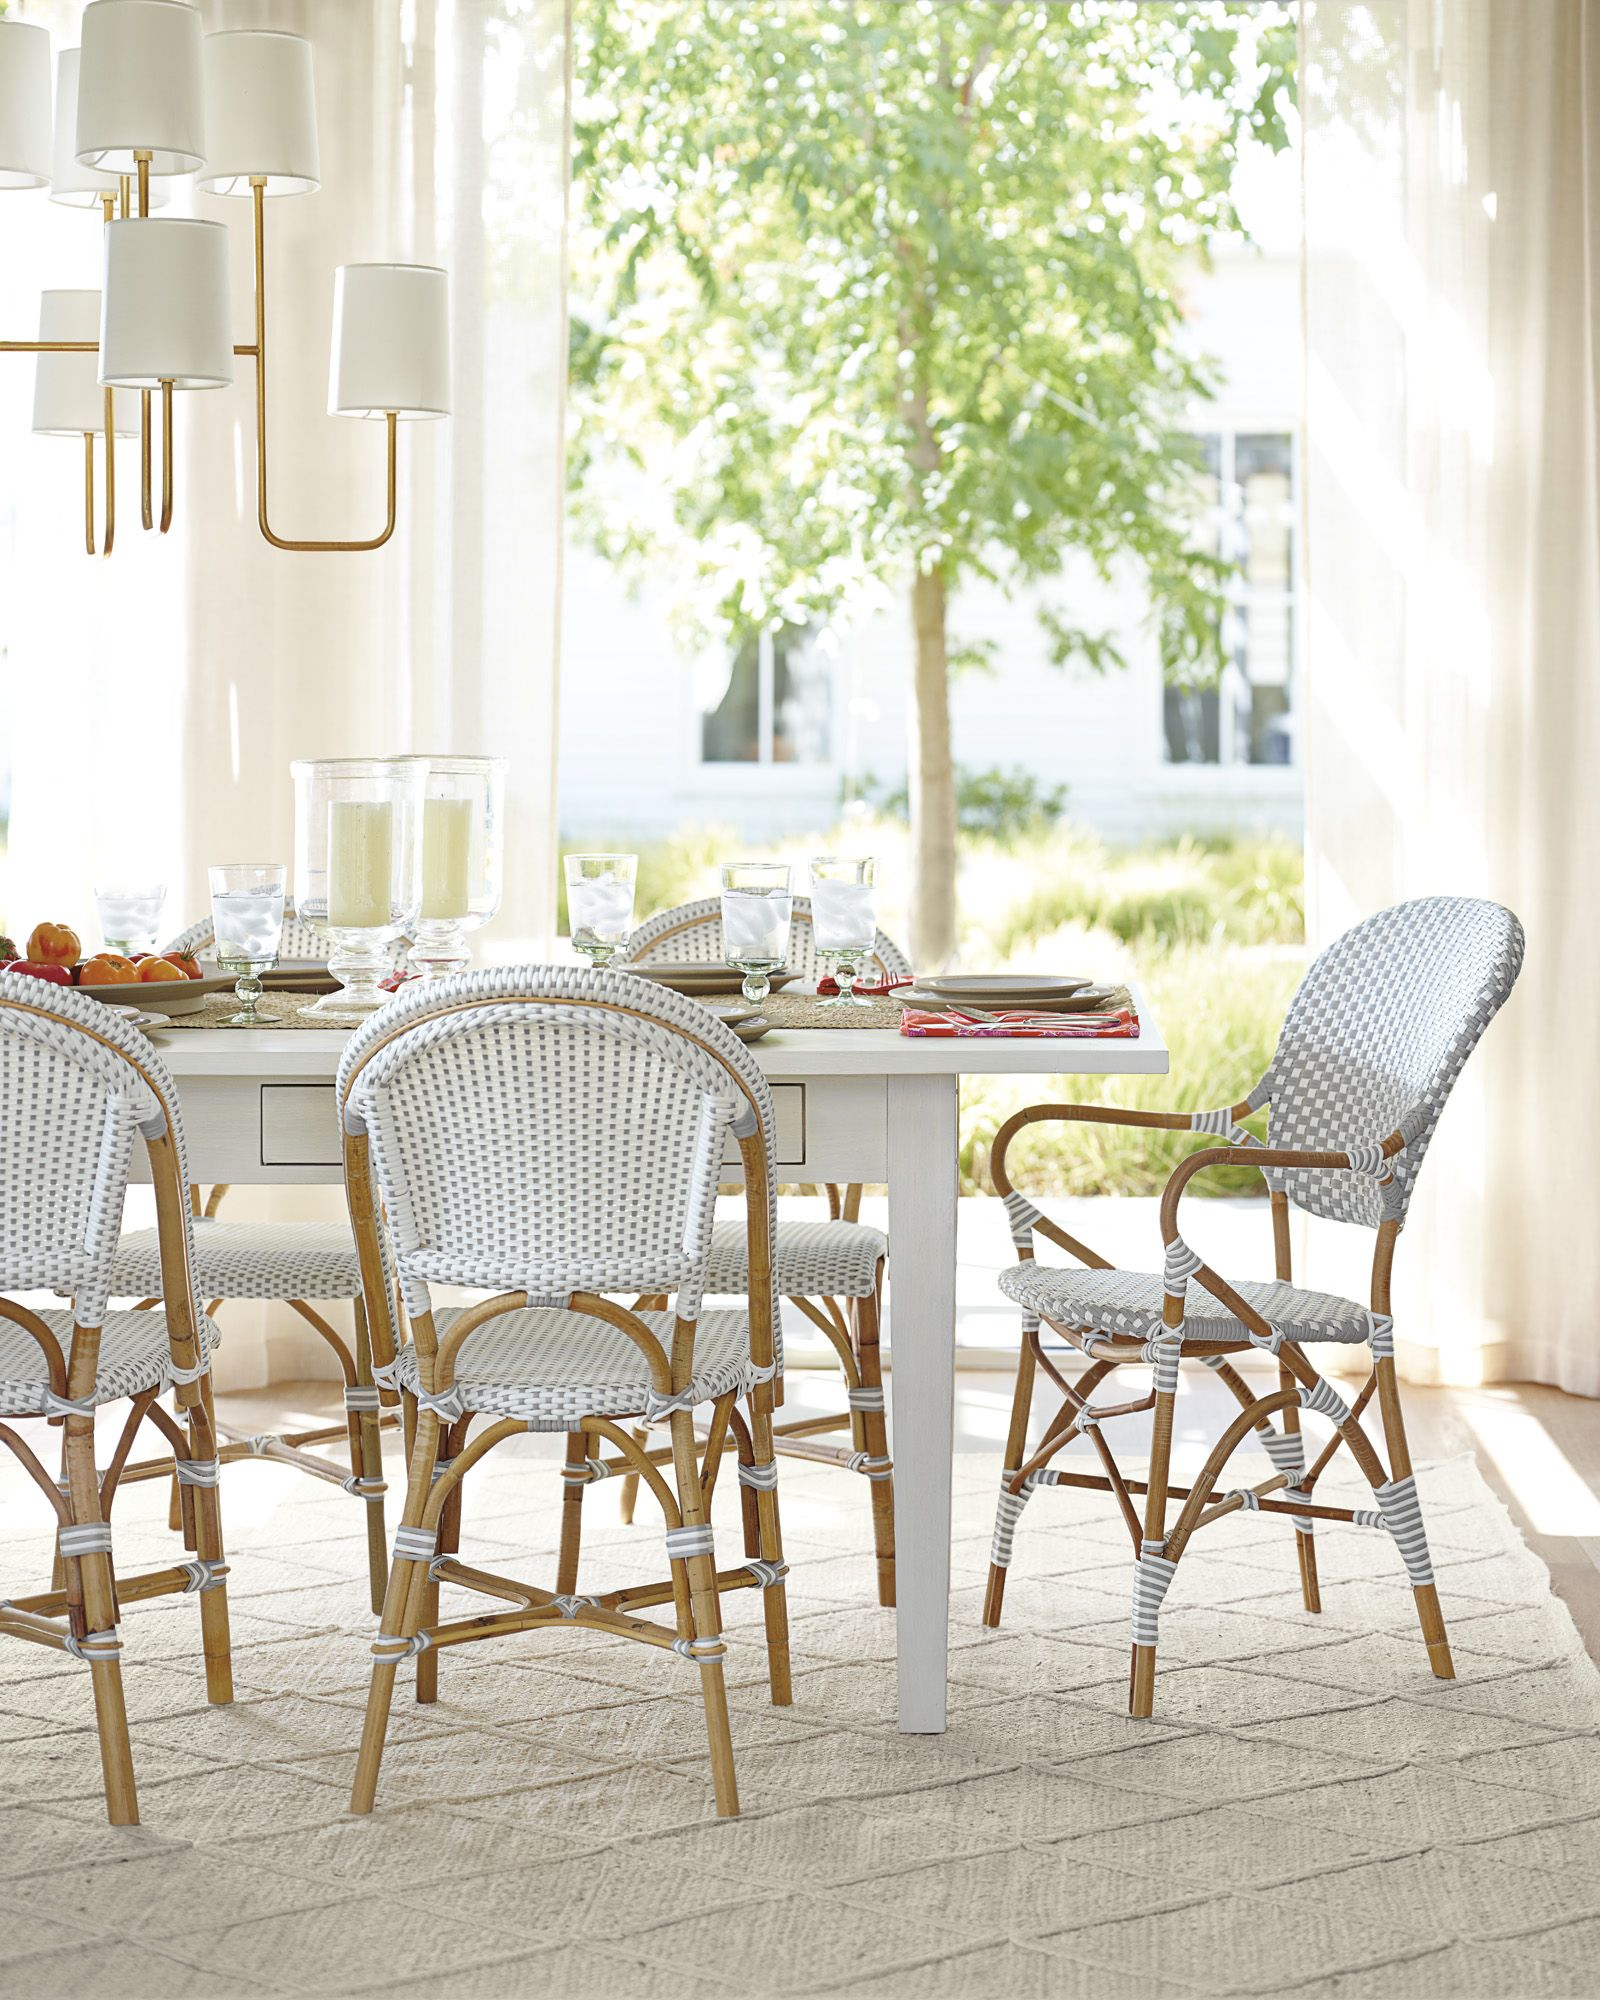 Newbury Dining Table Riviera Chairs Via Serena Lily Cottage